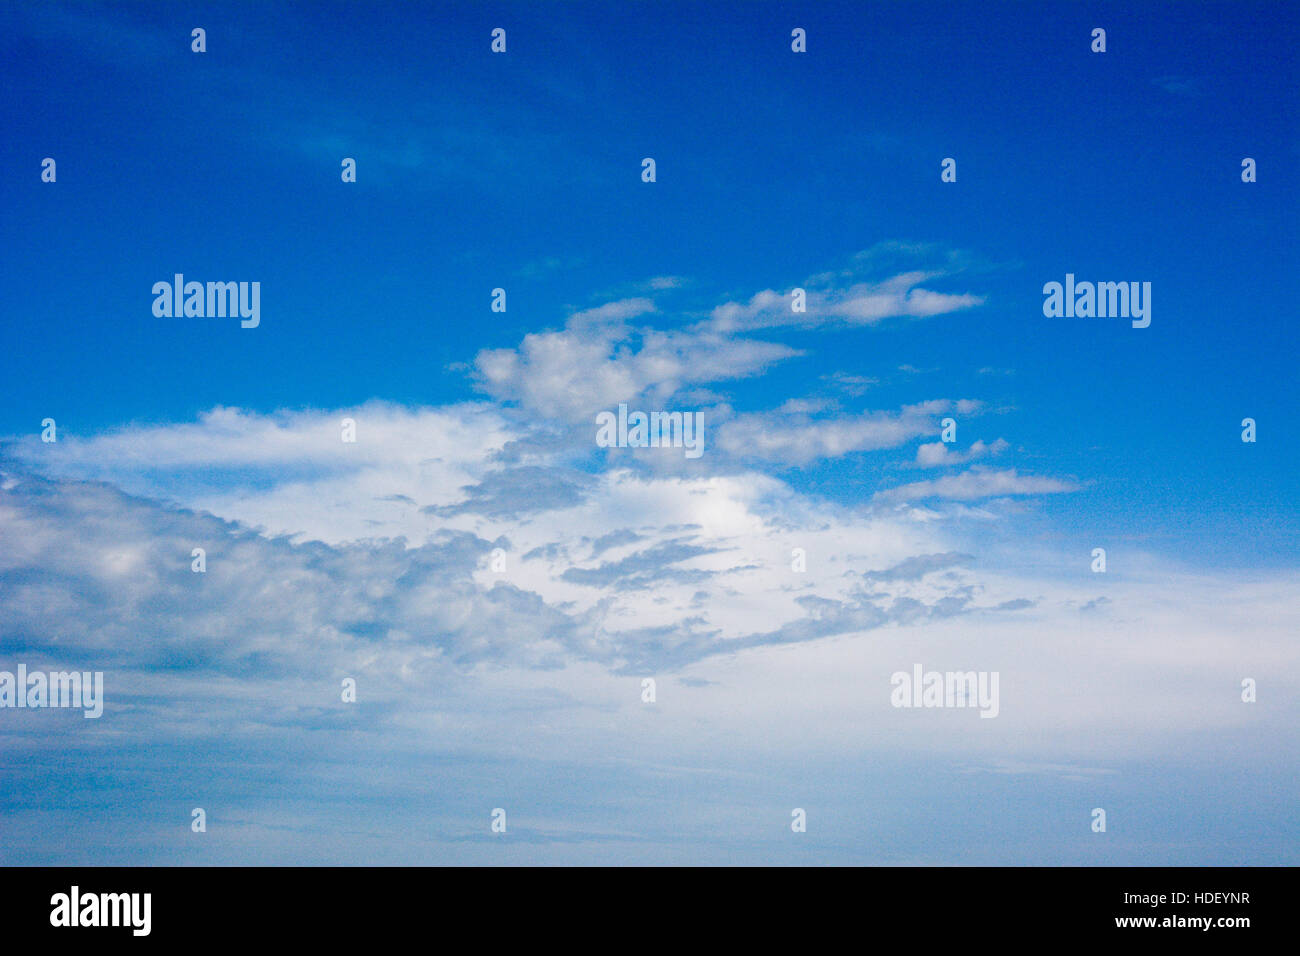 Patterned white clouds in a blue sky. - Stock Image